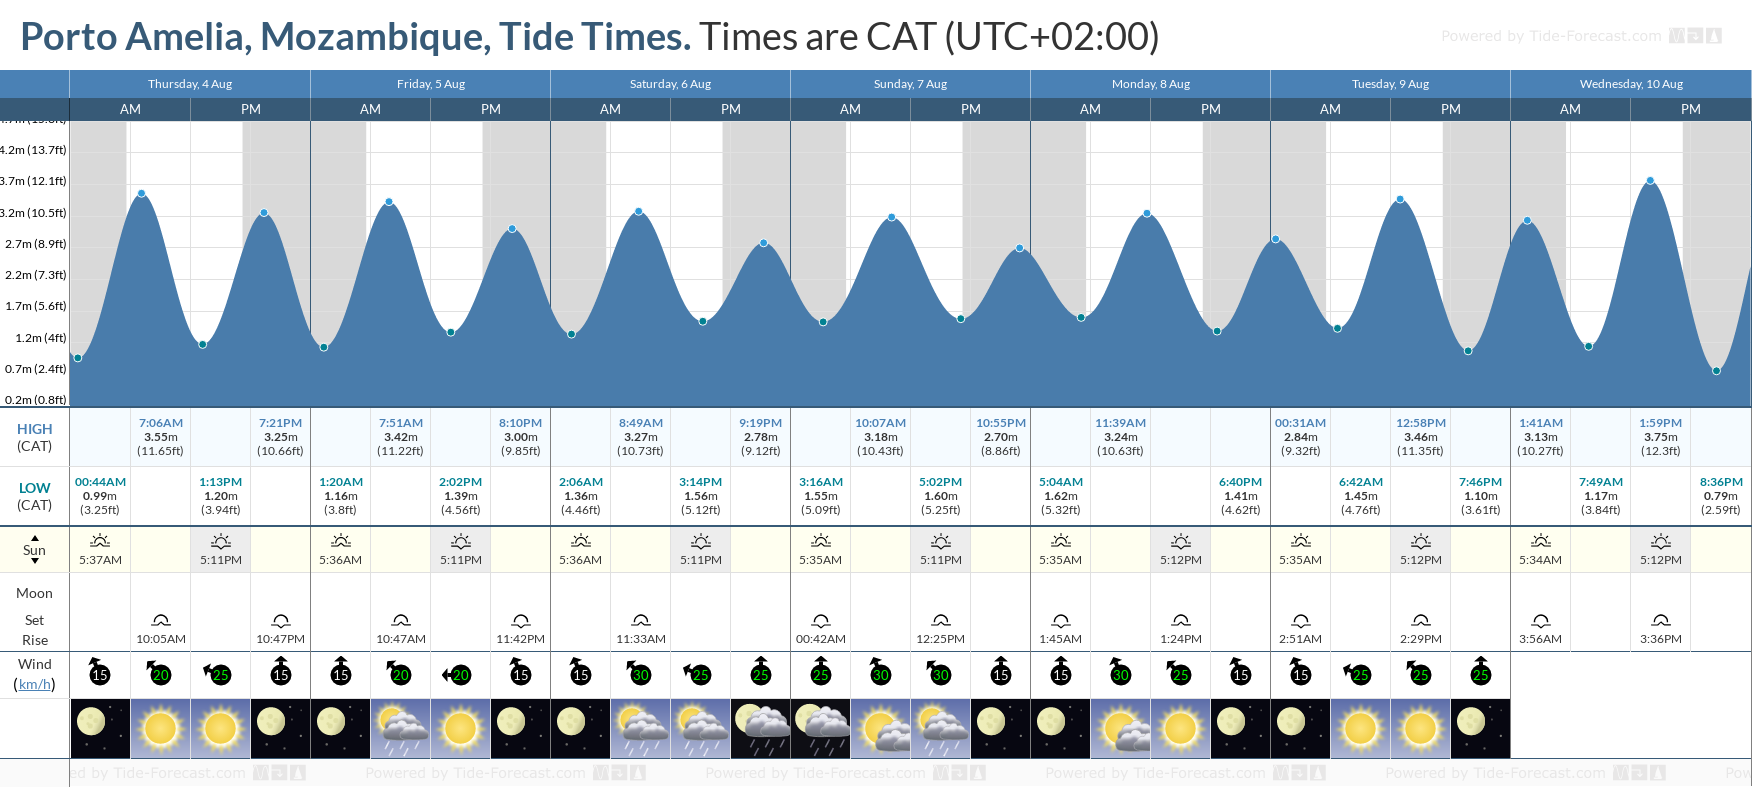 Porto Amelia, Mozambique Tide Chart including high and low tide tide times for the next 7 days